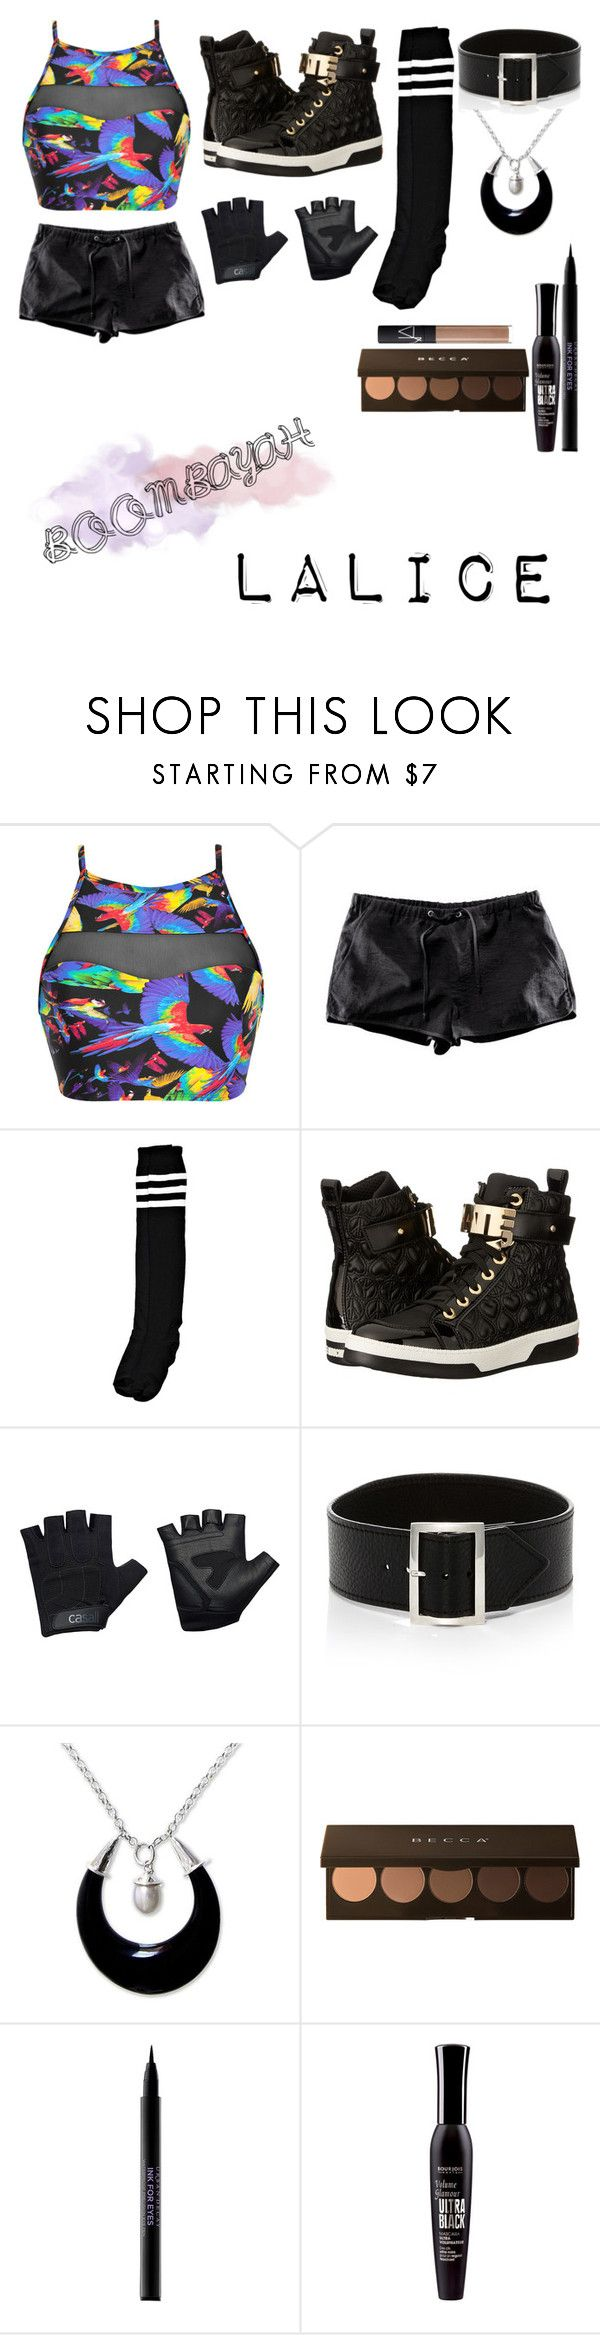 """""""Korean swag!"""" by foreignycadw ❤ liked on Polyvore featuring Blue Man, Boohoo, Love Moschino, Casall, Sophie Buhai, NOVICA, Becca, Urban Decay, Bourjois and NARS Cosmetics"""